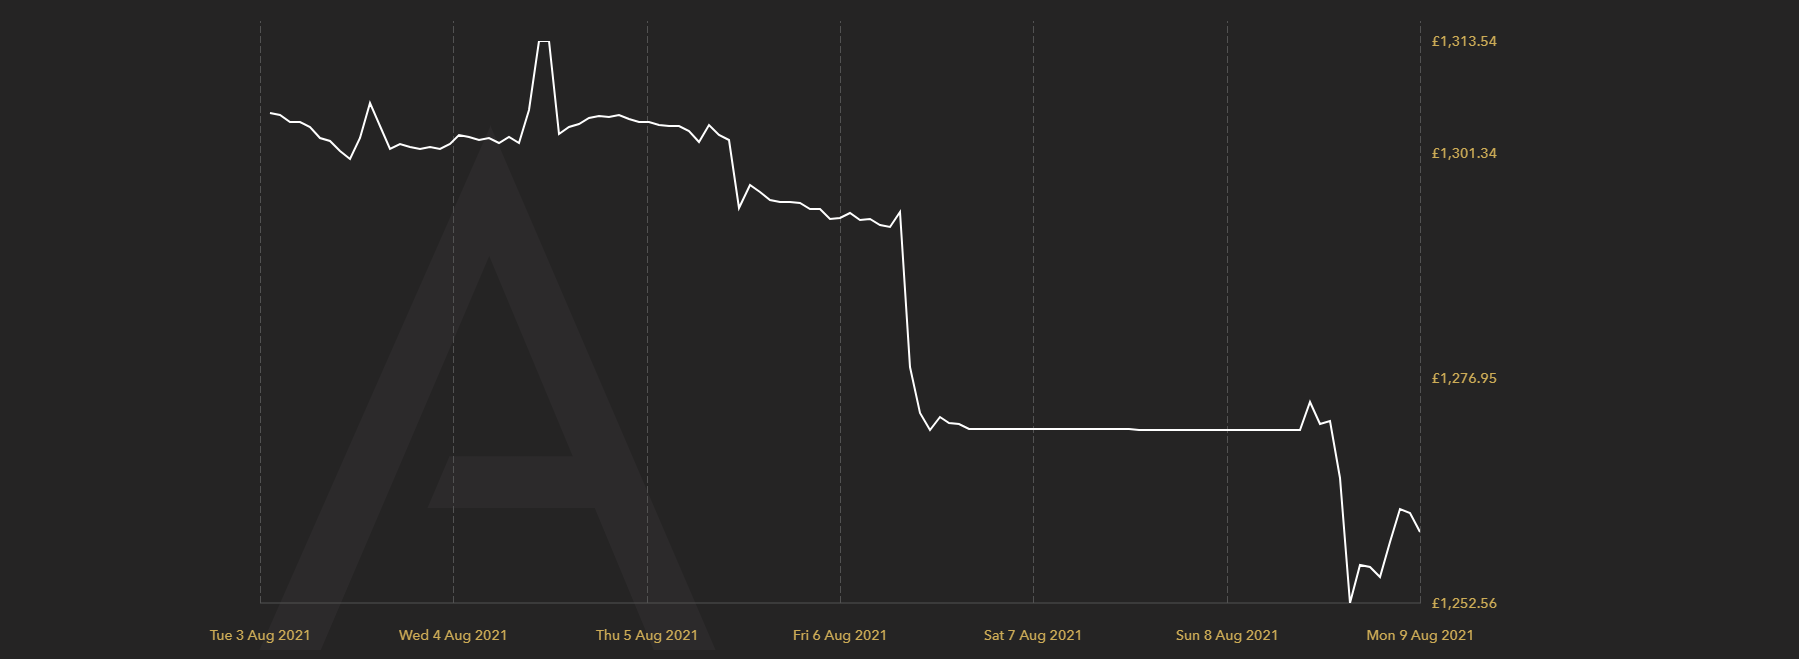 Gold Price in GBP August 2021